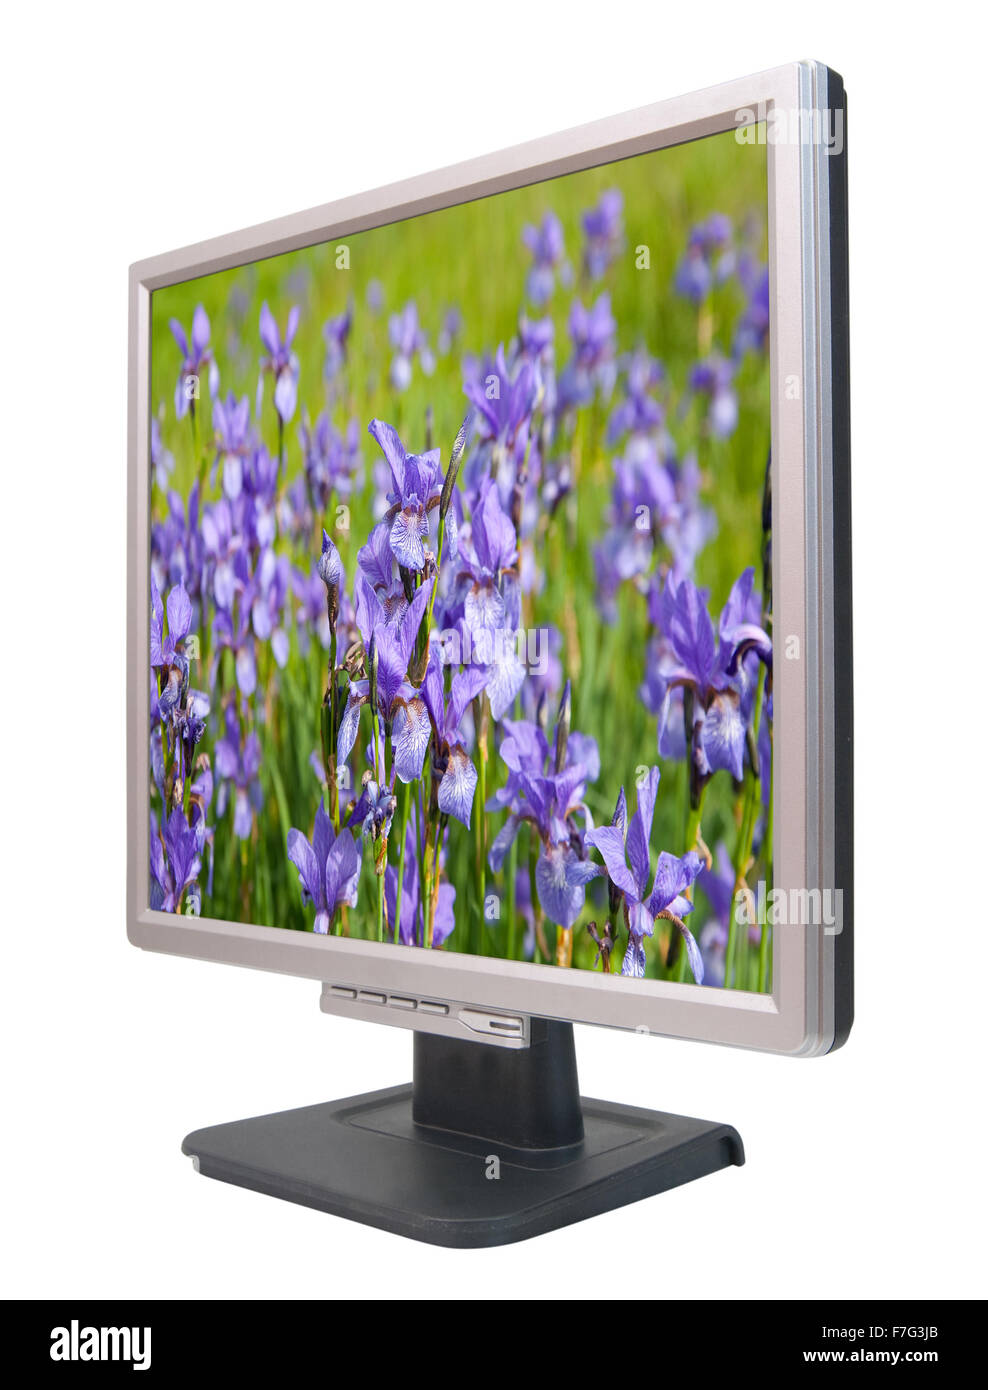 Lcd monitor with iris plant on wallpaper. On screen my photo - Stock Image